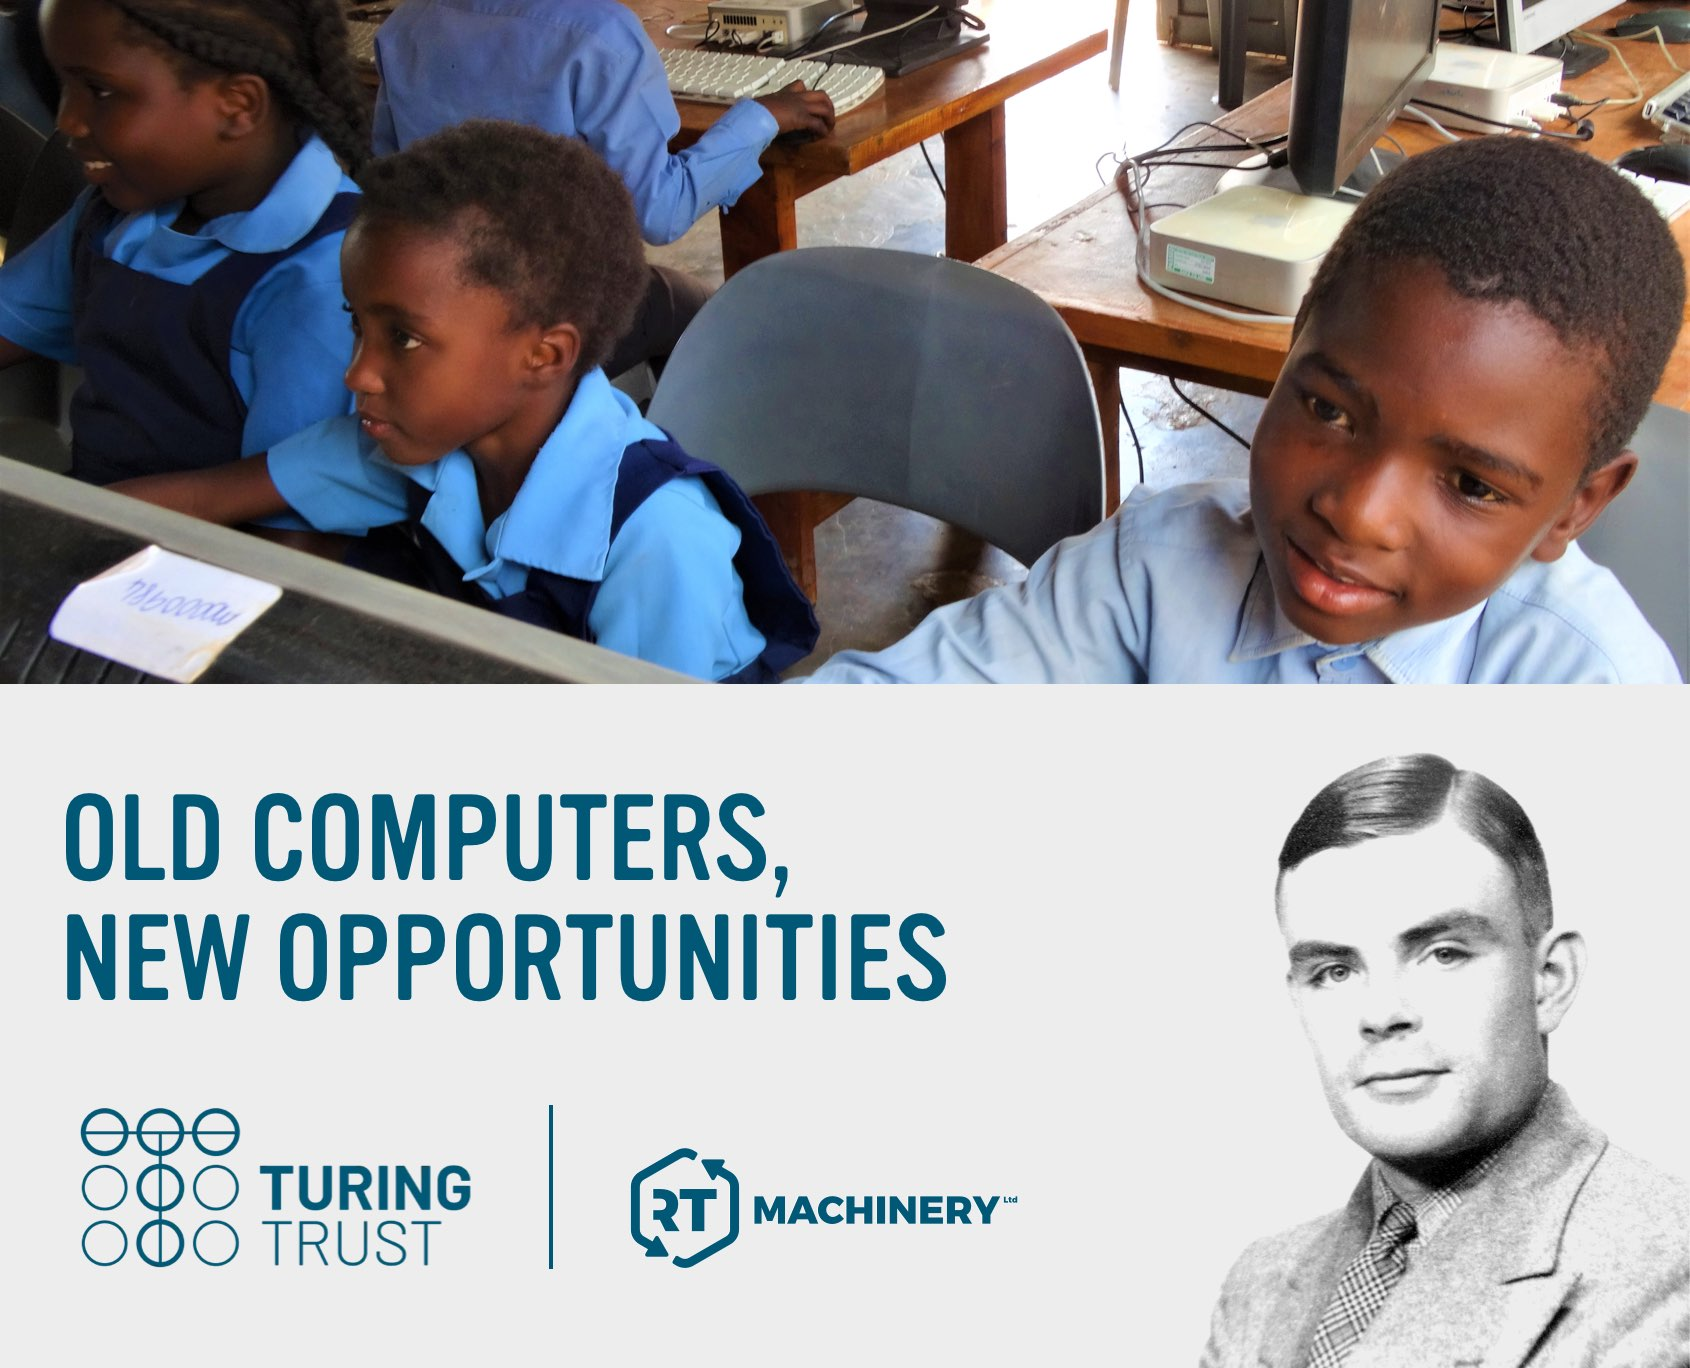 Old Computers, New Opportunities